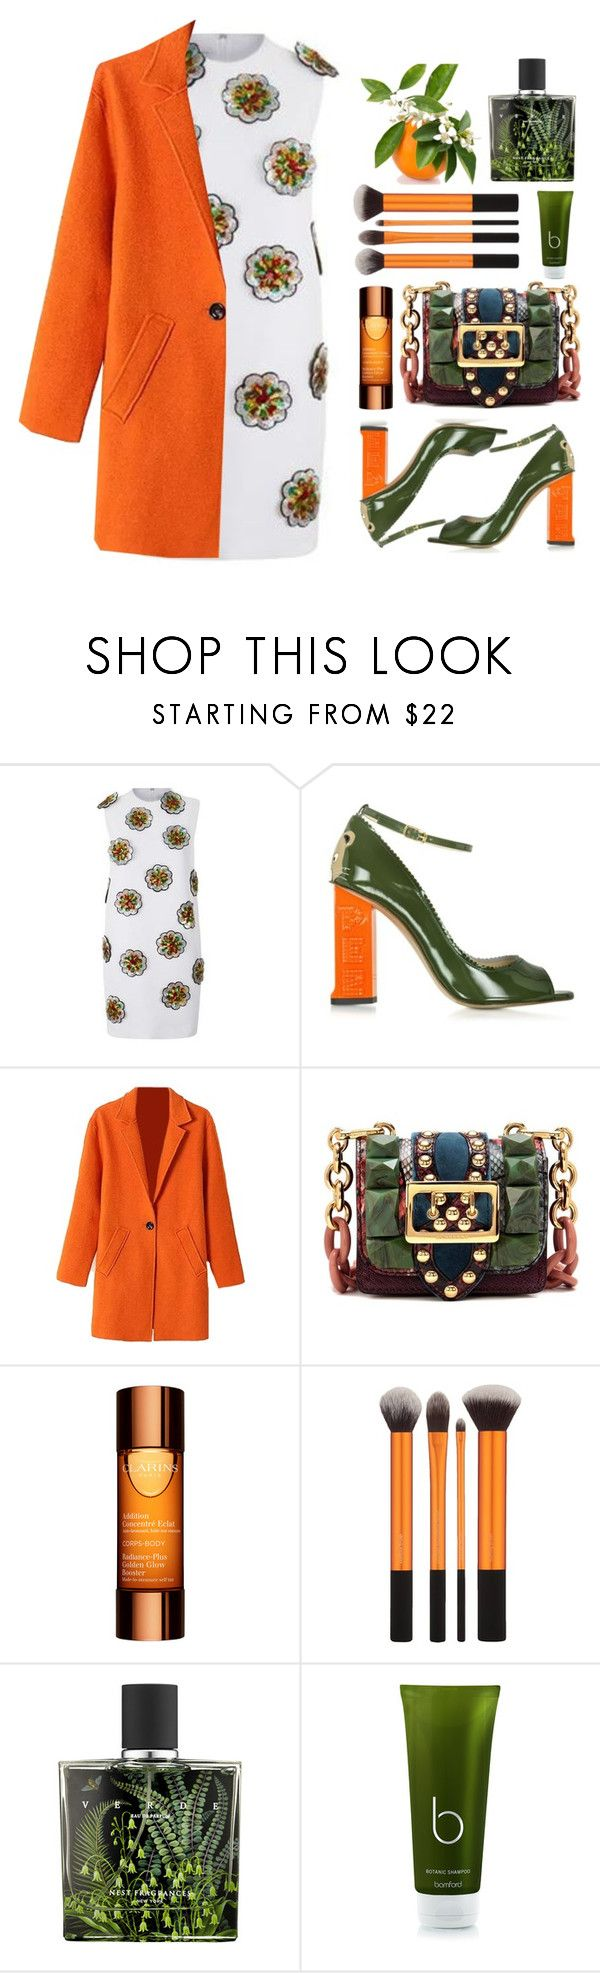 """""""28.12.17-2"""" by malenafashion27 ❤ liked on Polyvore featuring Victoria, Victoria Beckham, Camilla Elphick, Burberry, Clarins, Nest and Bamford"""